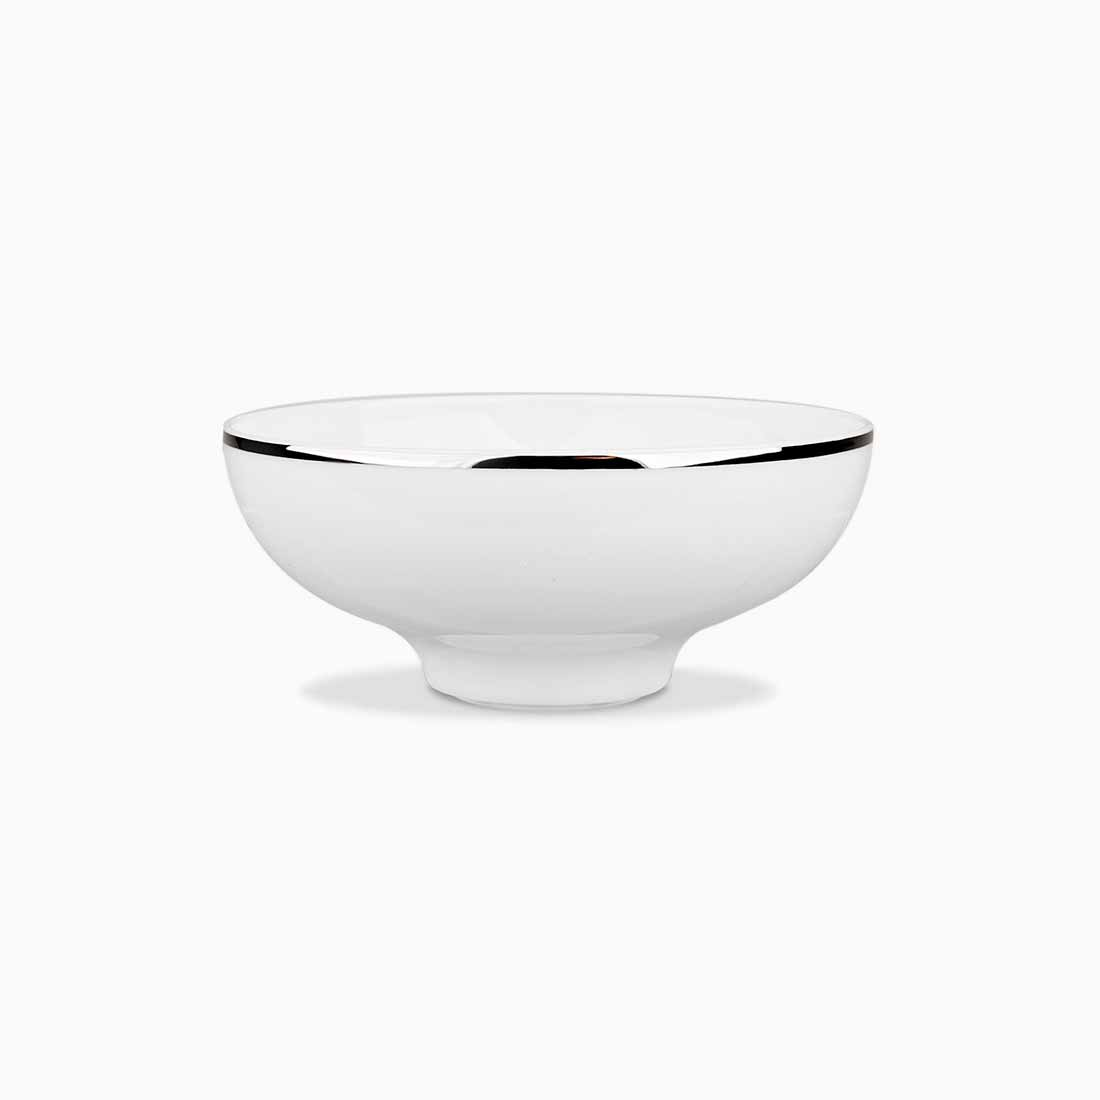 Pomona Bowl White with platinum line 14 cm by Bodo Sperlein